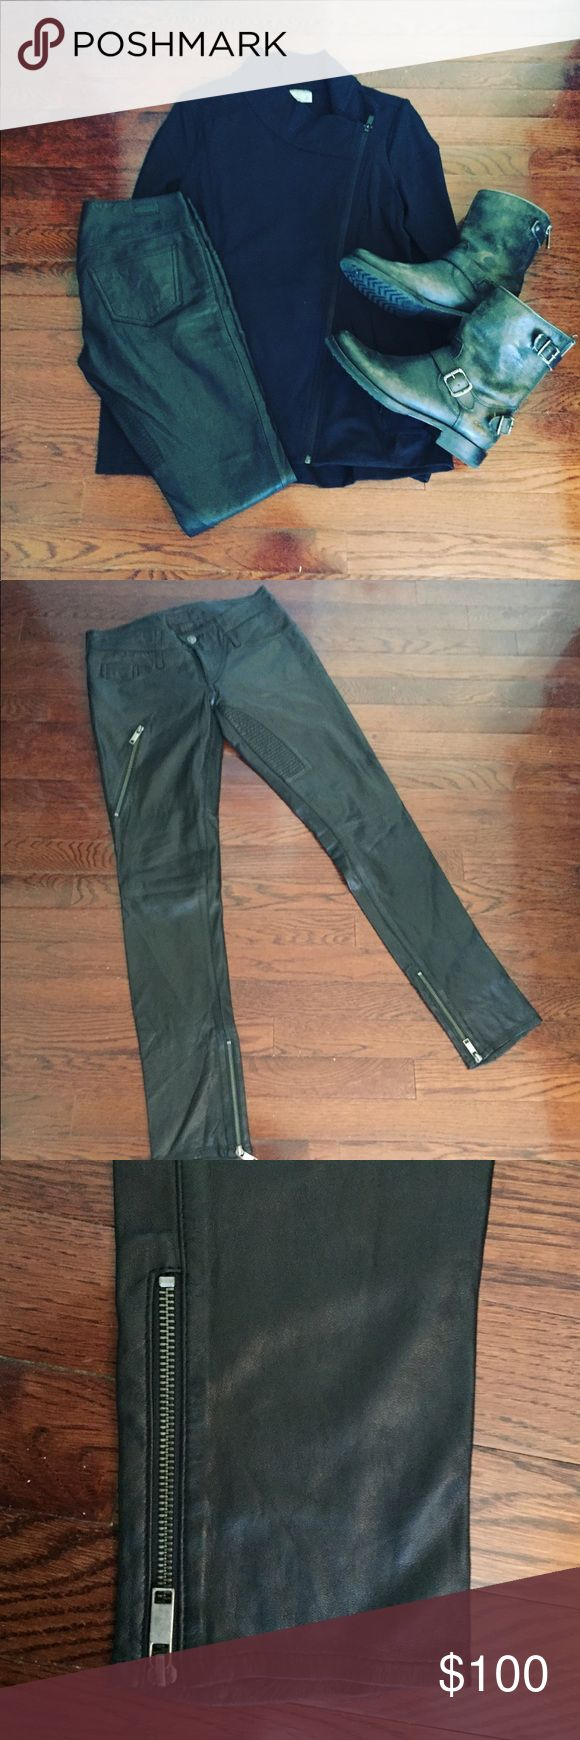 Diesel Leather Skinny Pants Amazing pair of lamb skin leather pants from Diesel in a size 25! Excellent condition with no flaws, silk lining goes halfway down leg of Pants, Moto style with zipper detailing. So soft and very high quality leather! Skinny fit, 31.5 inch inseam. Diesel Pants Skinny